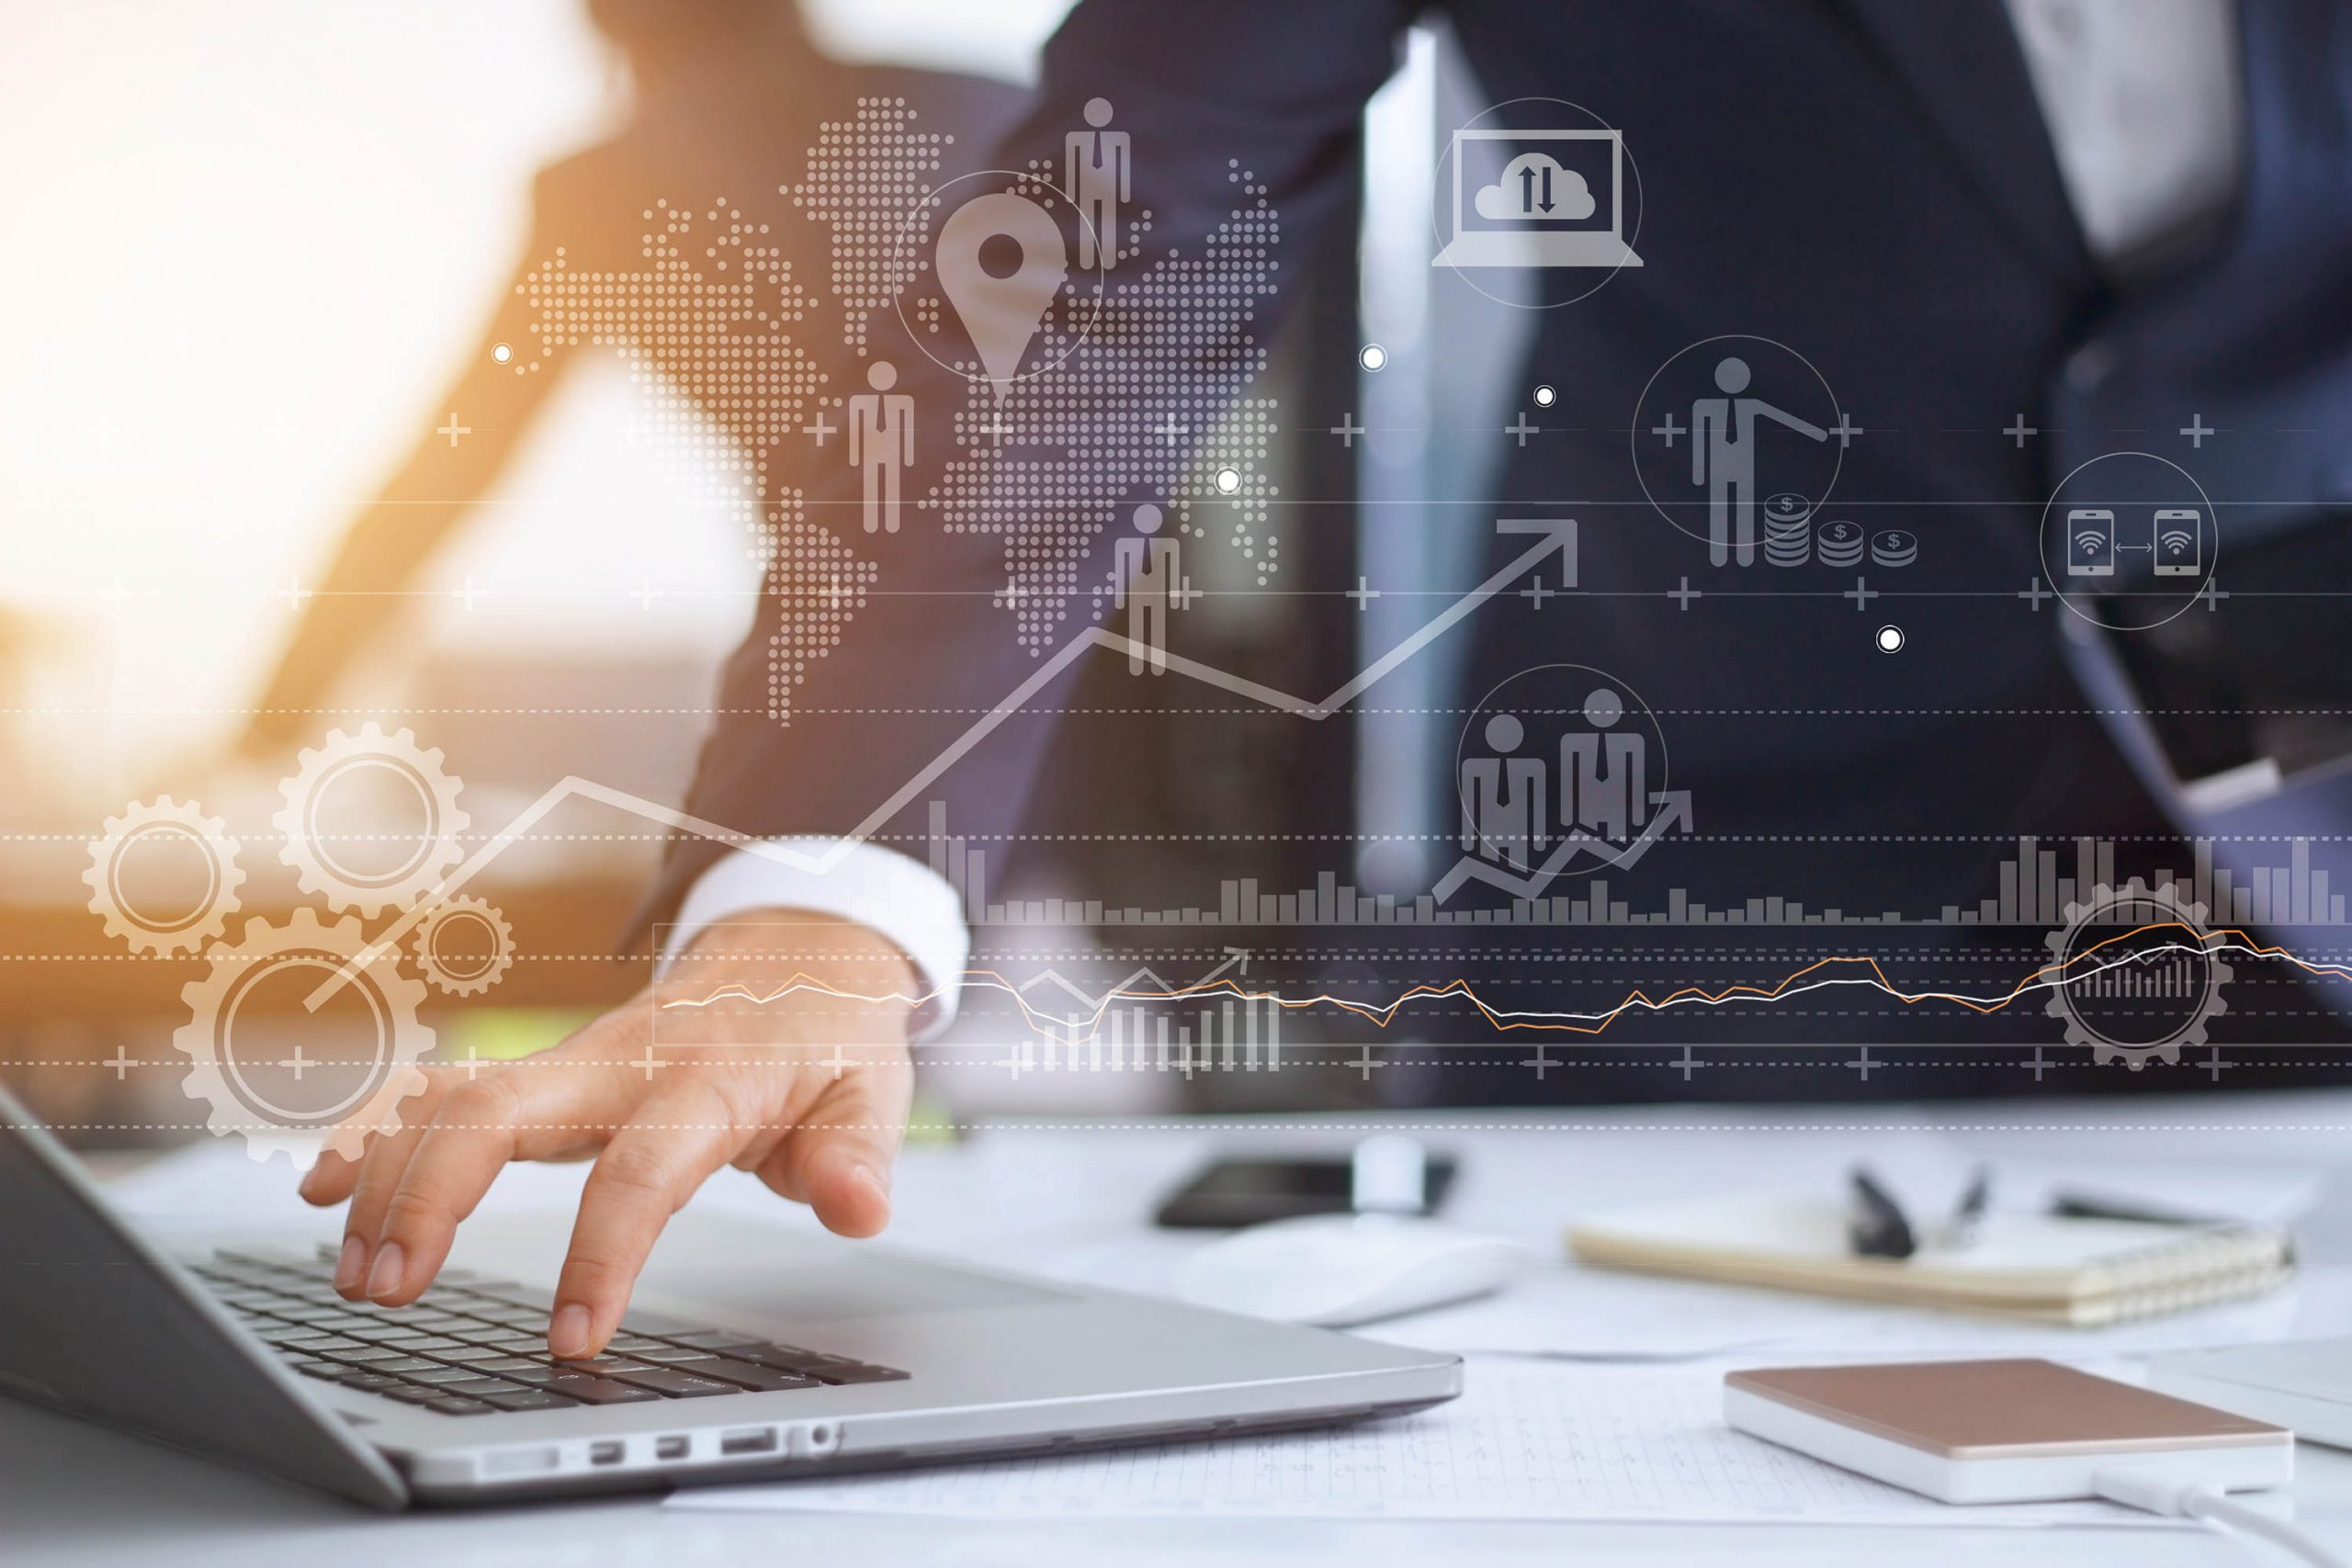 Global network-connected storage market size with top country data, segmentation analysis, value chain and key trends by 2026